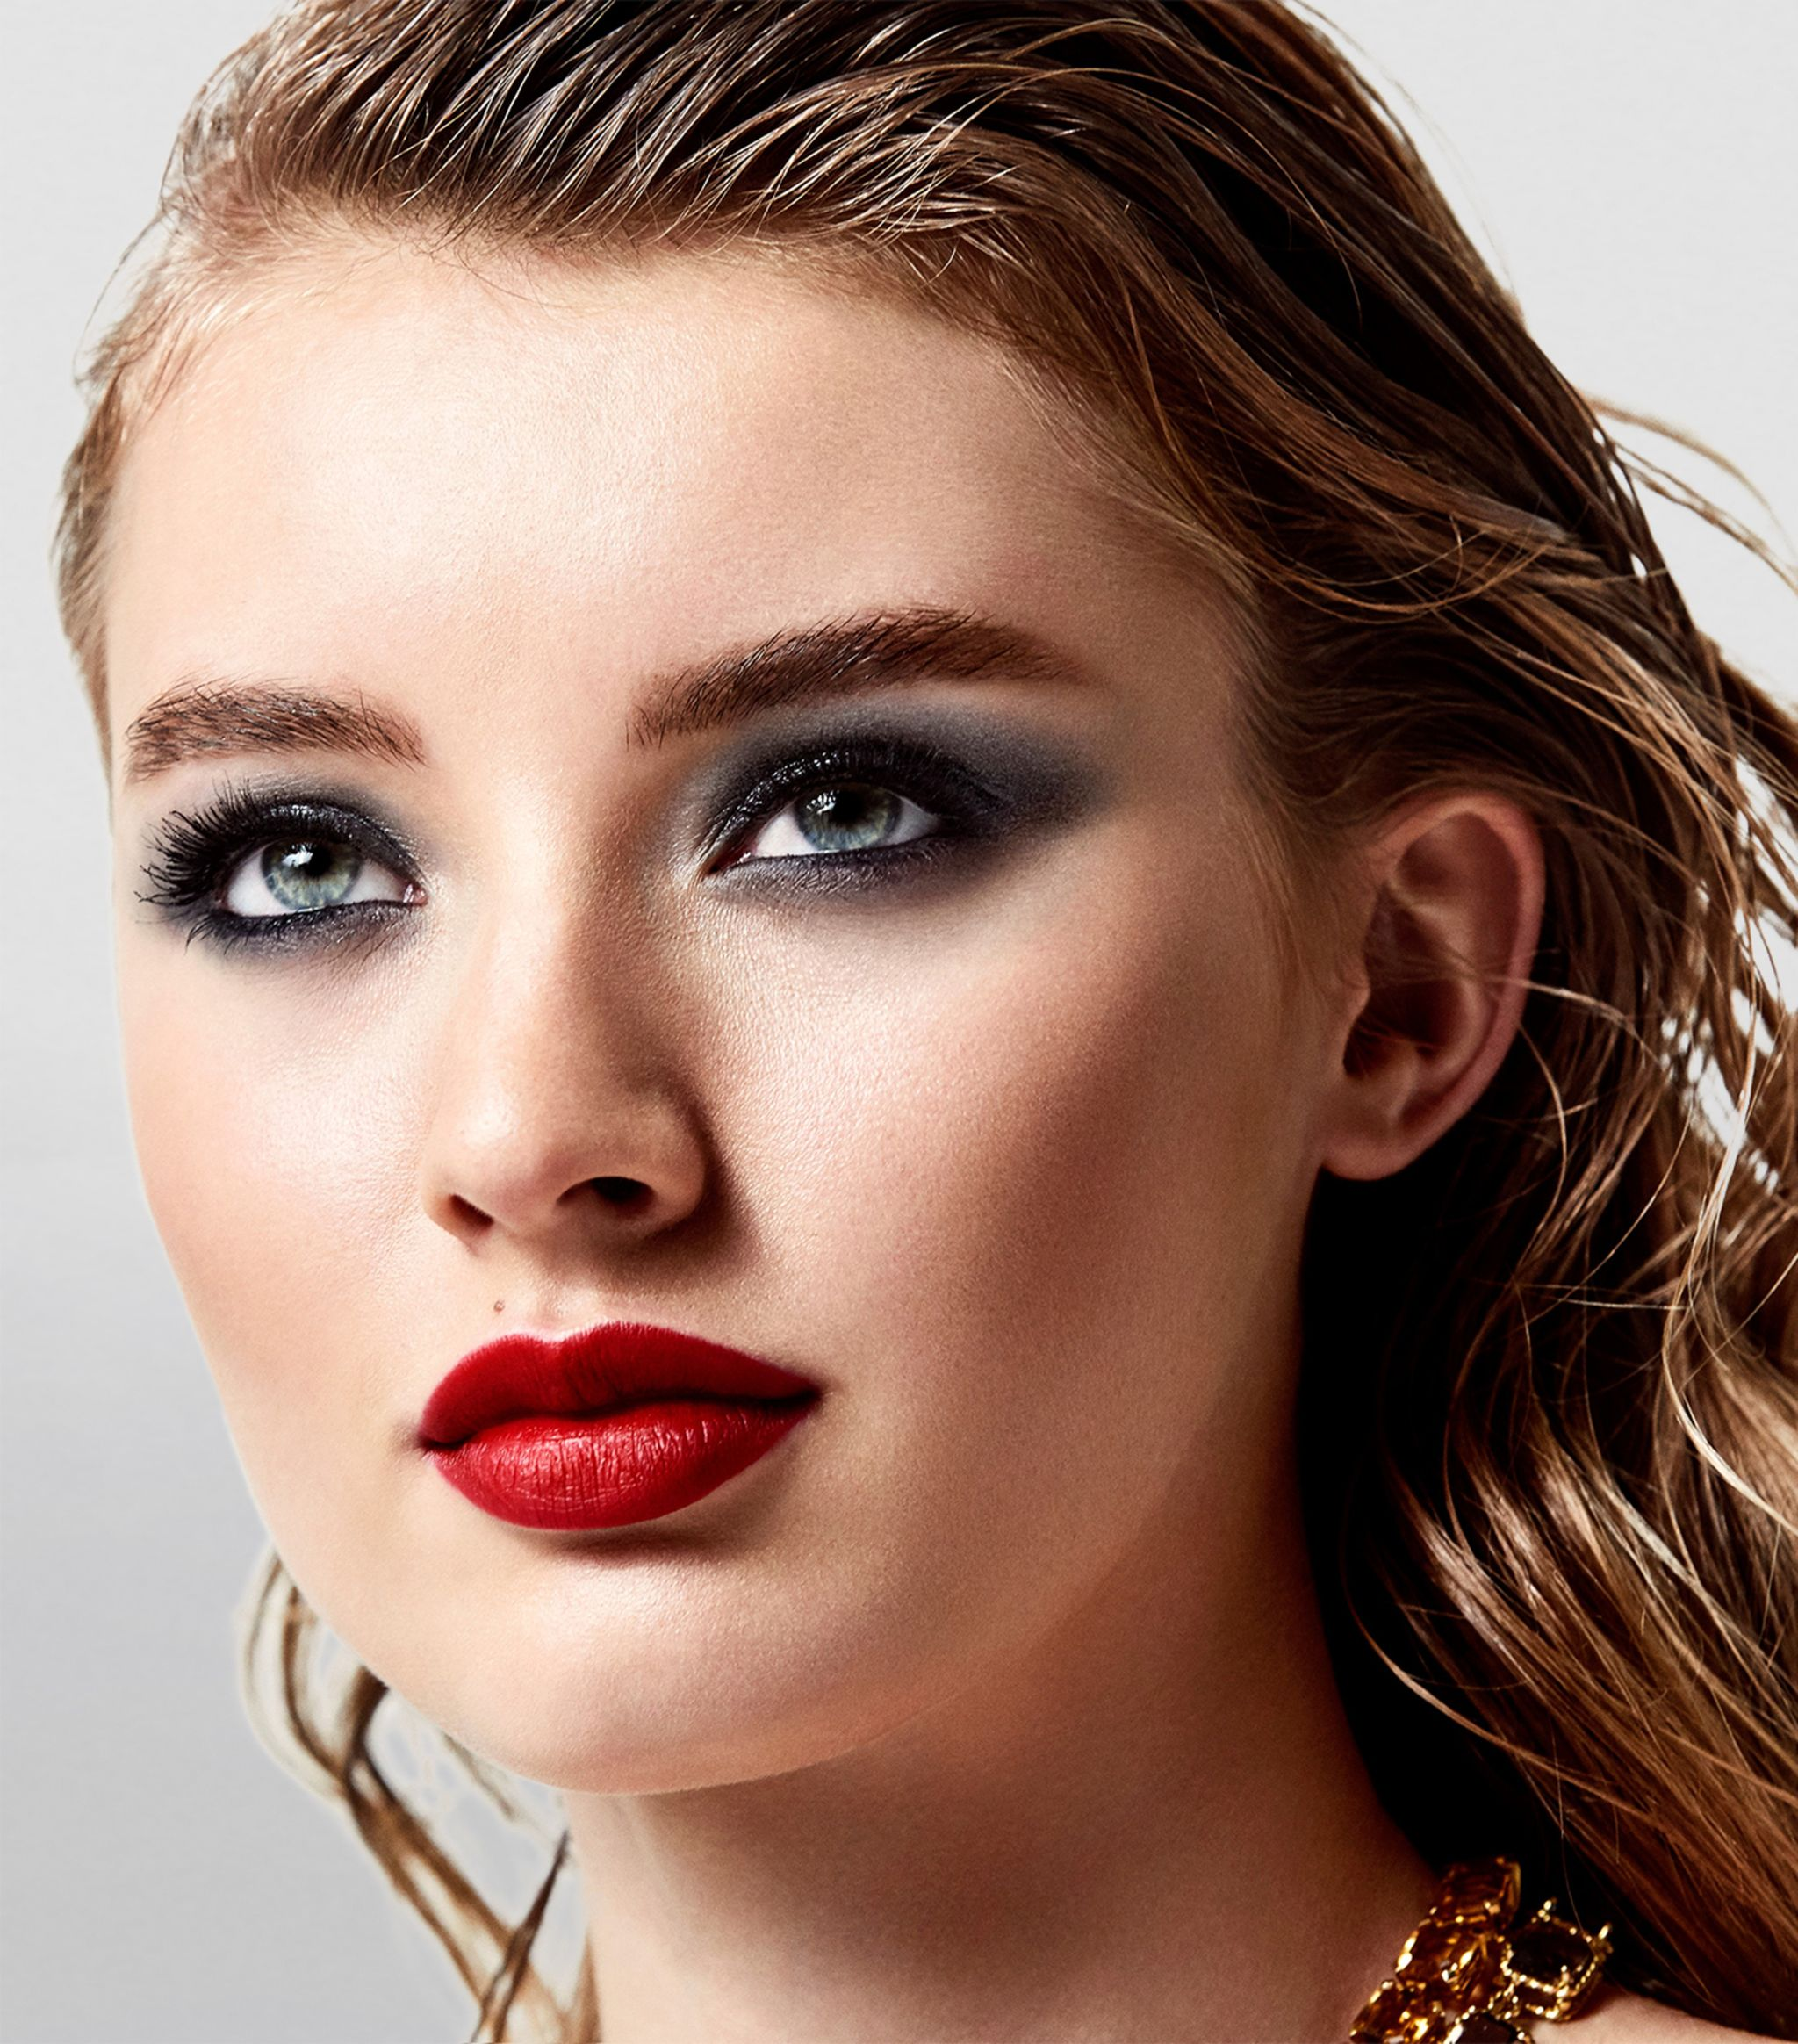 Dolce Gabbana Beauty Passionlips Lipstick Beautyvelle Makeup News 120 passion is, as i have said, a pinky red with lots of gold shimmer. dolce gabbana beauty passionlips